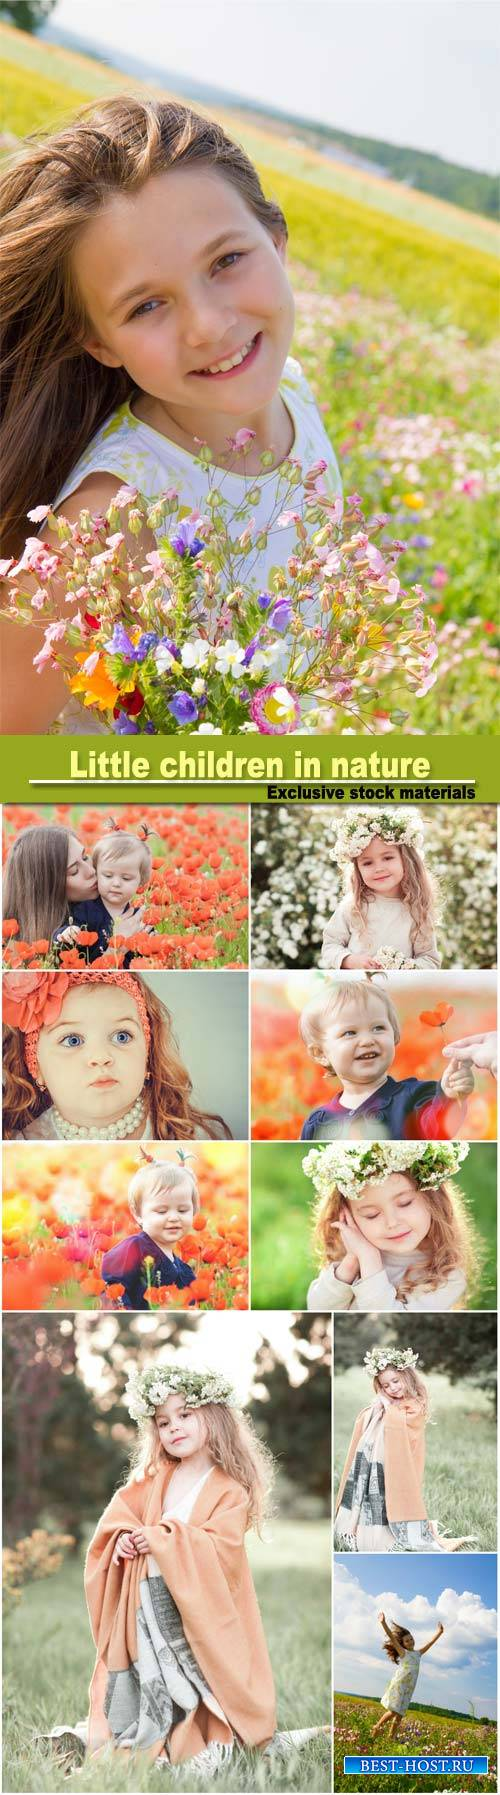 Little children in nature, family